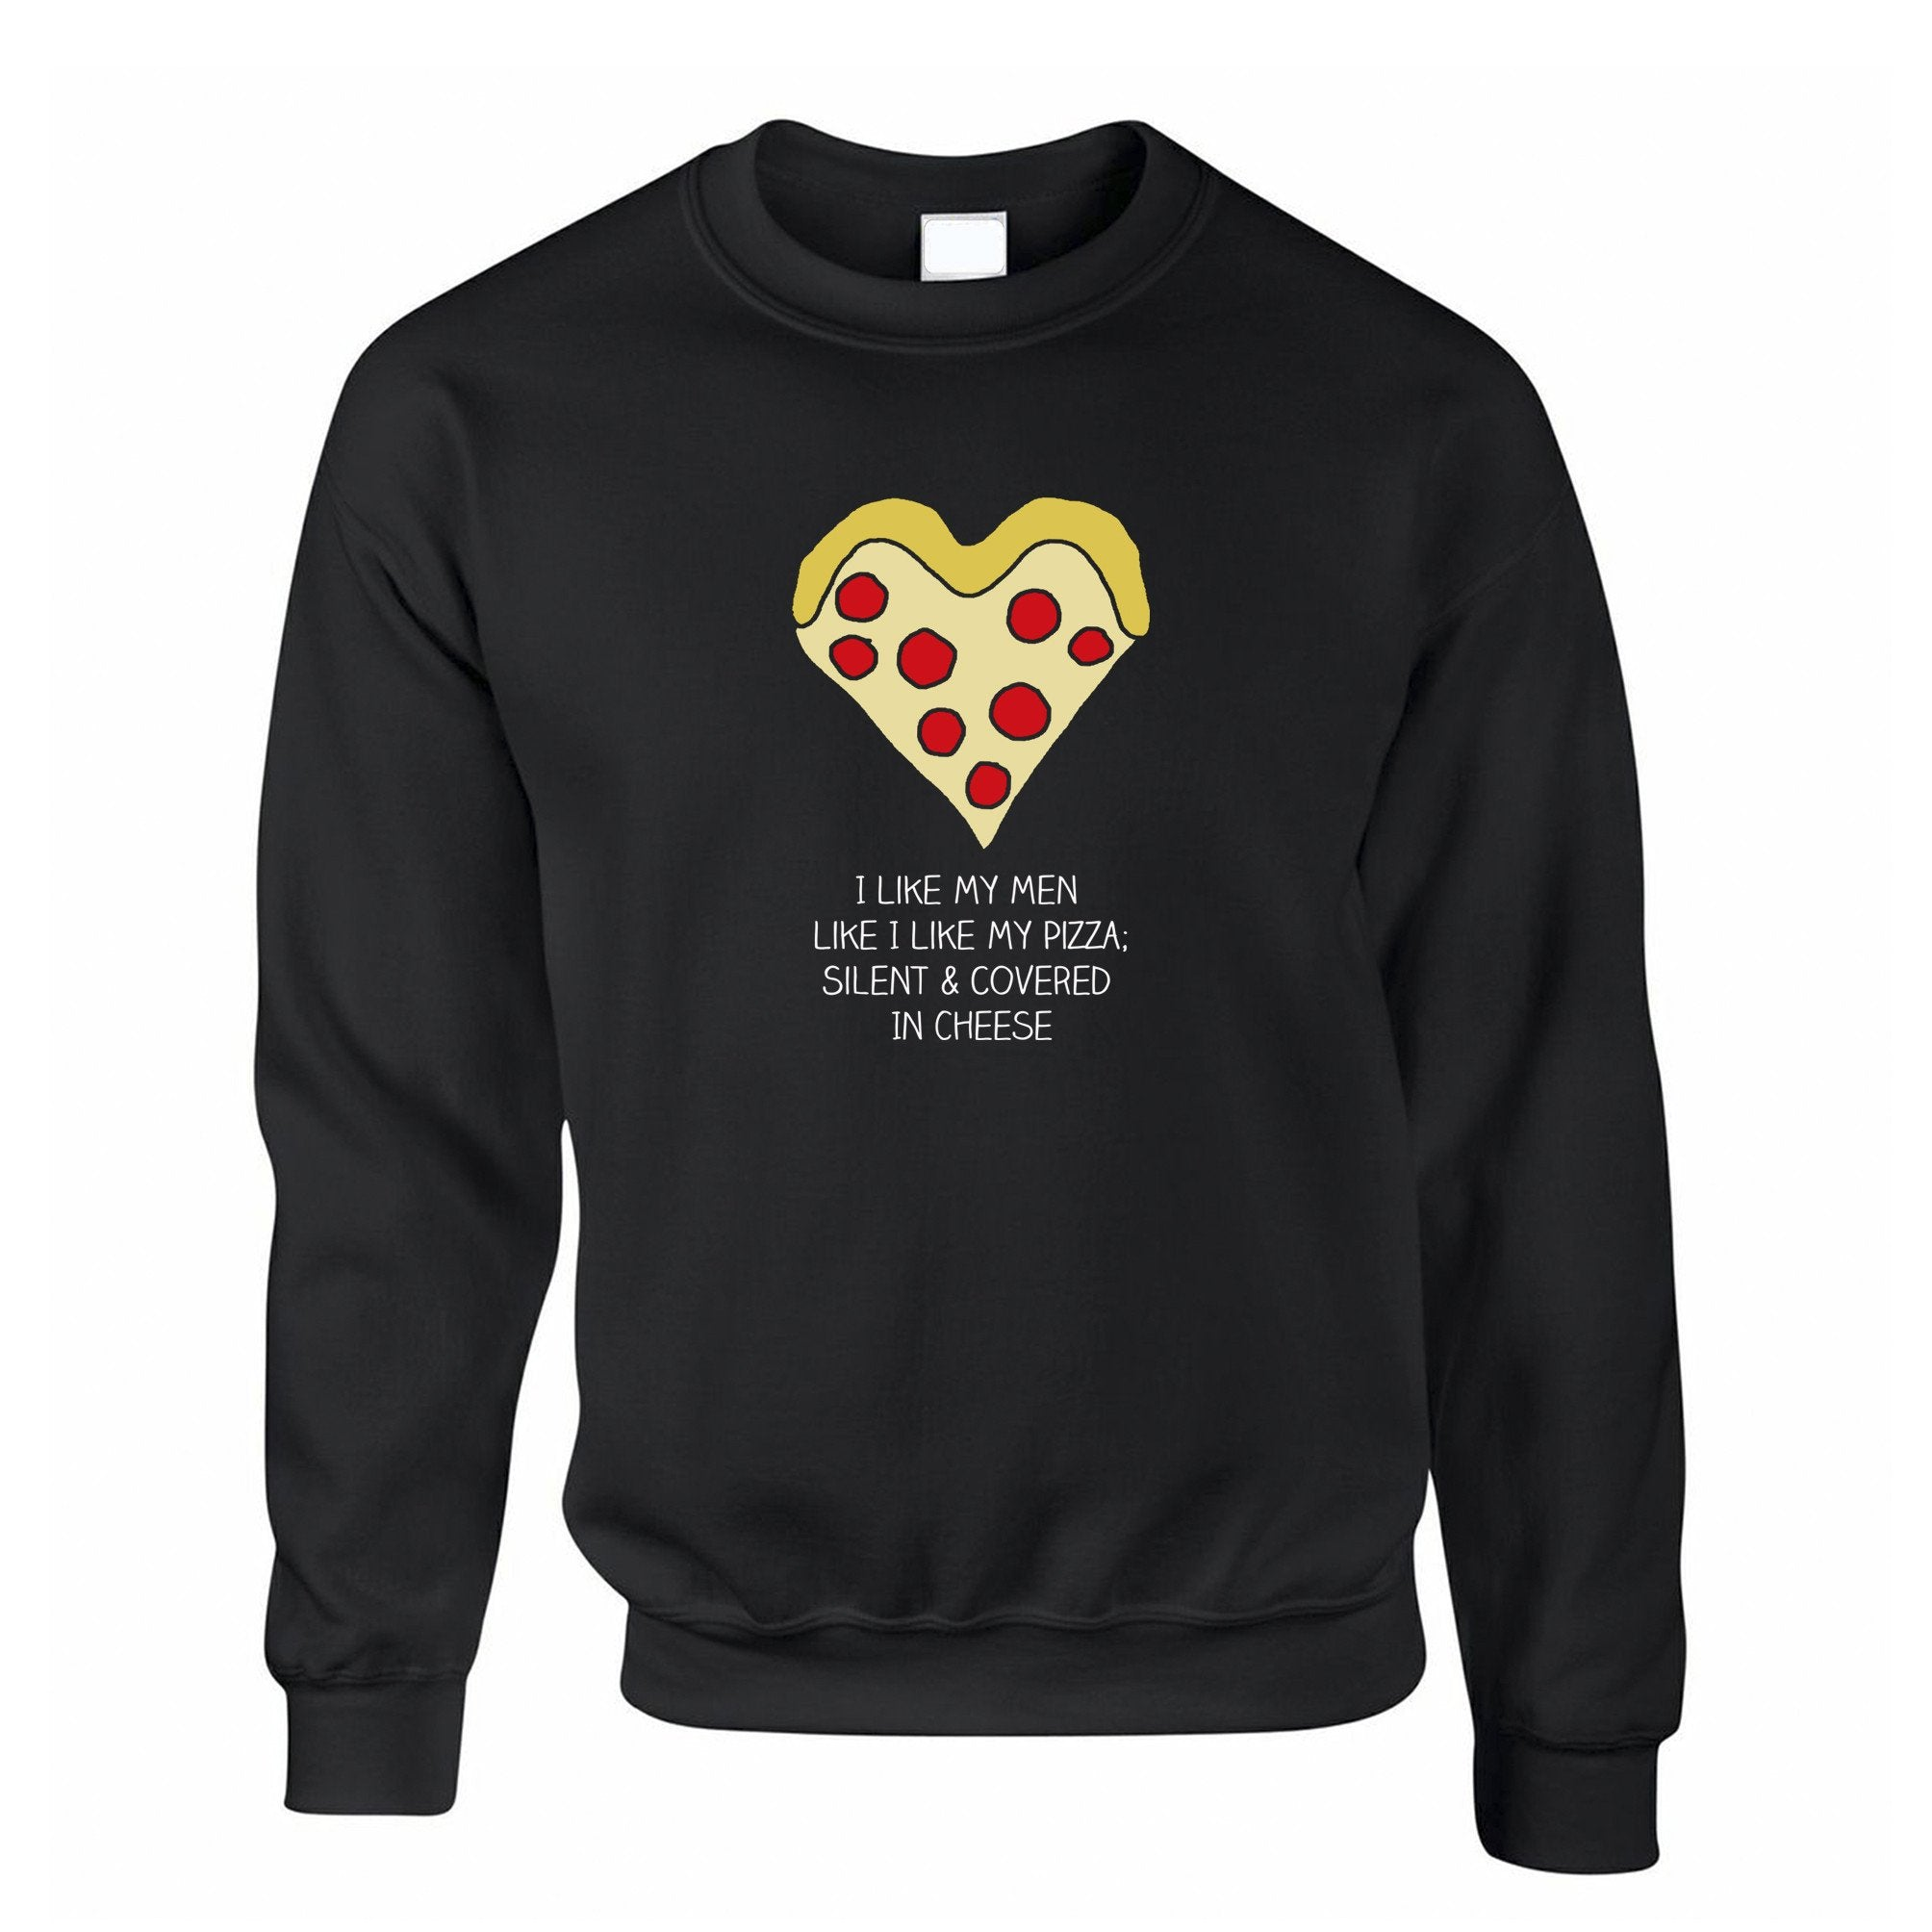 Novelty Jumper Like My Men Like I Like My Pizza Joke Sweatshirt Sweater